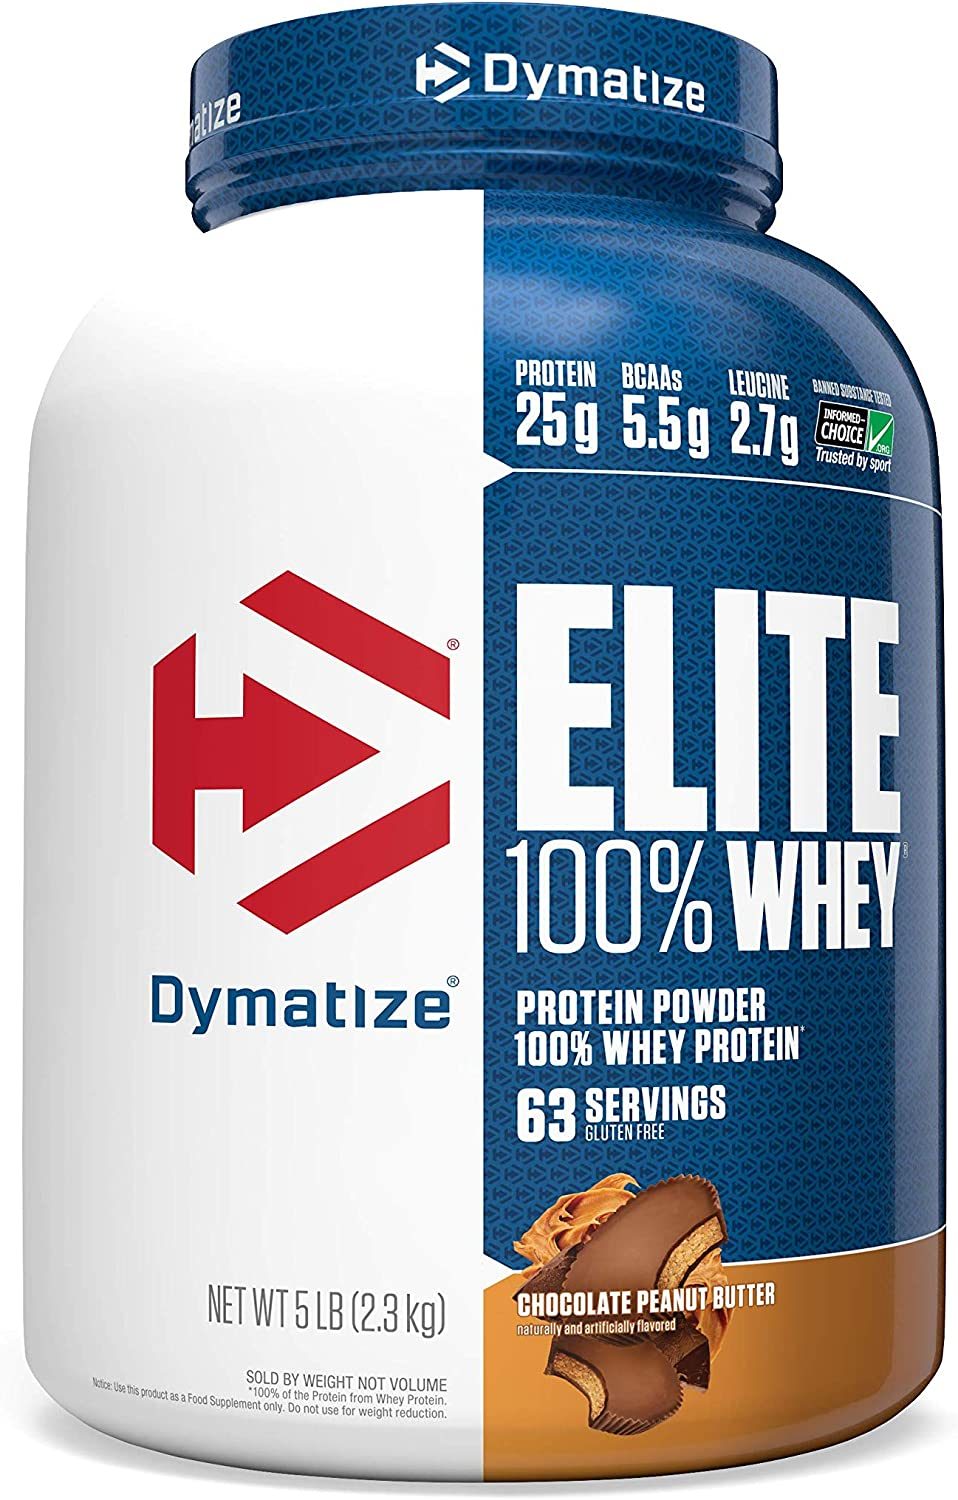 Dymatize Elite 100 Whey Protein Powder, Take Pre Workout or Post Workout, Quick Absorbing Fast Digesting, Chocolate Peanut Butter, 5 Pound